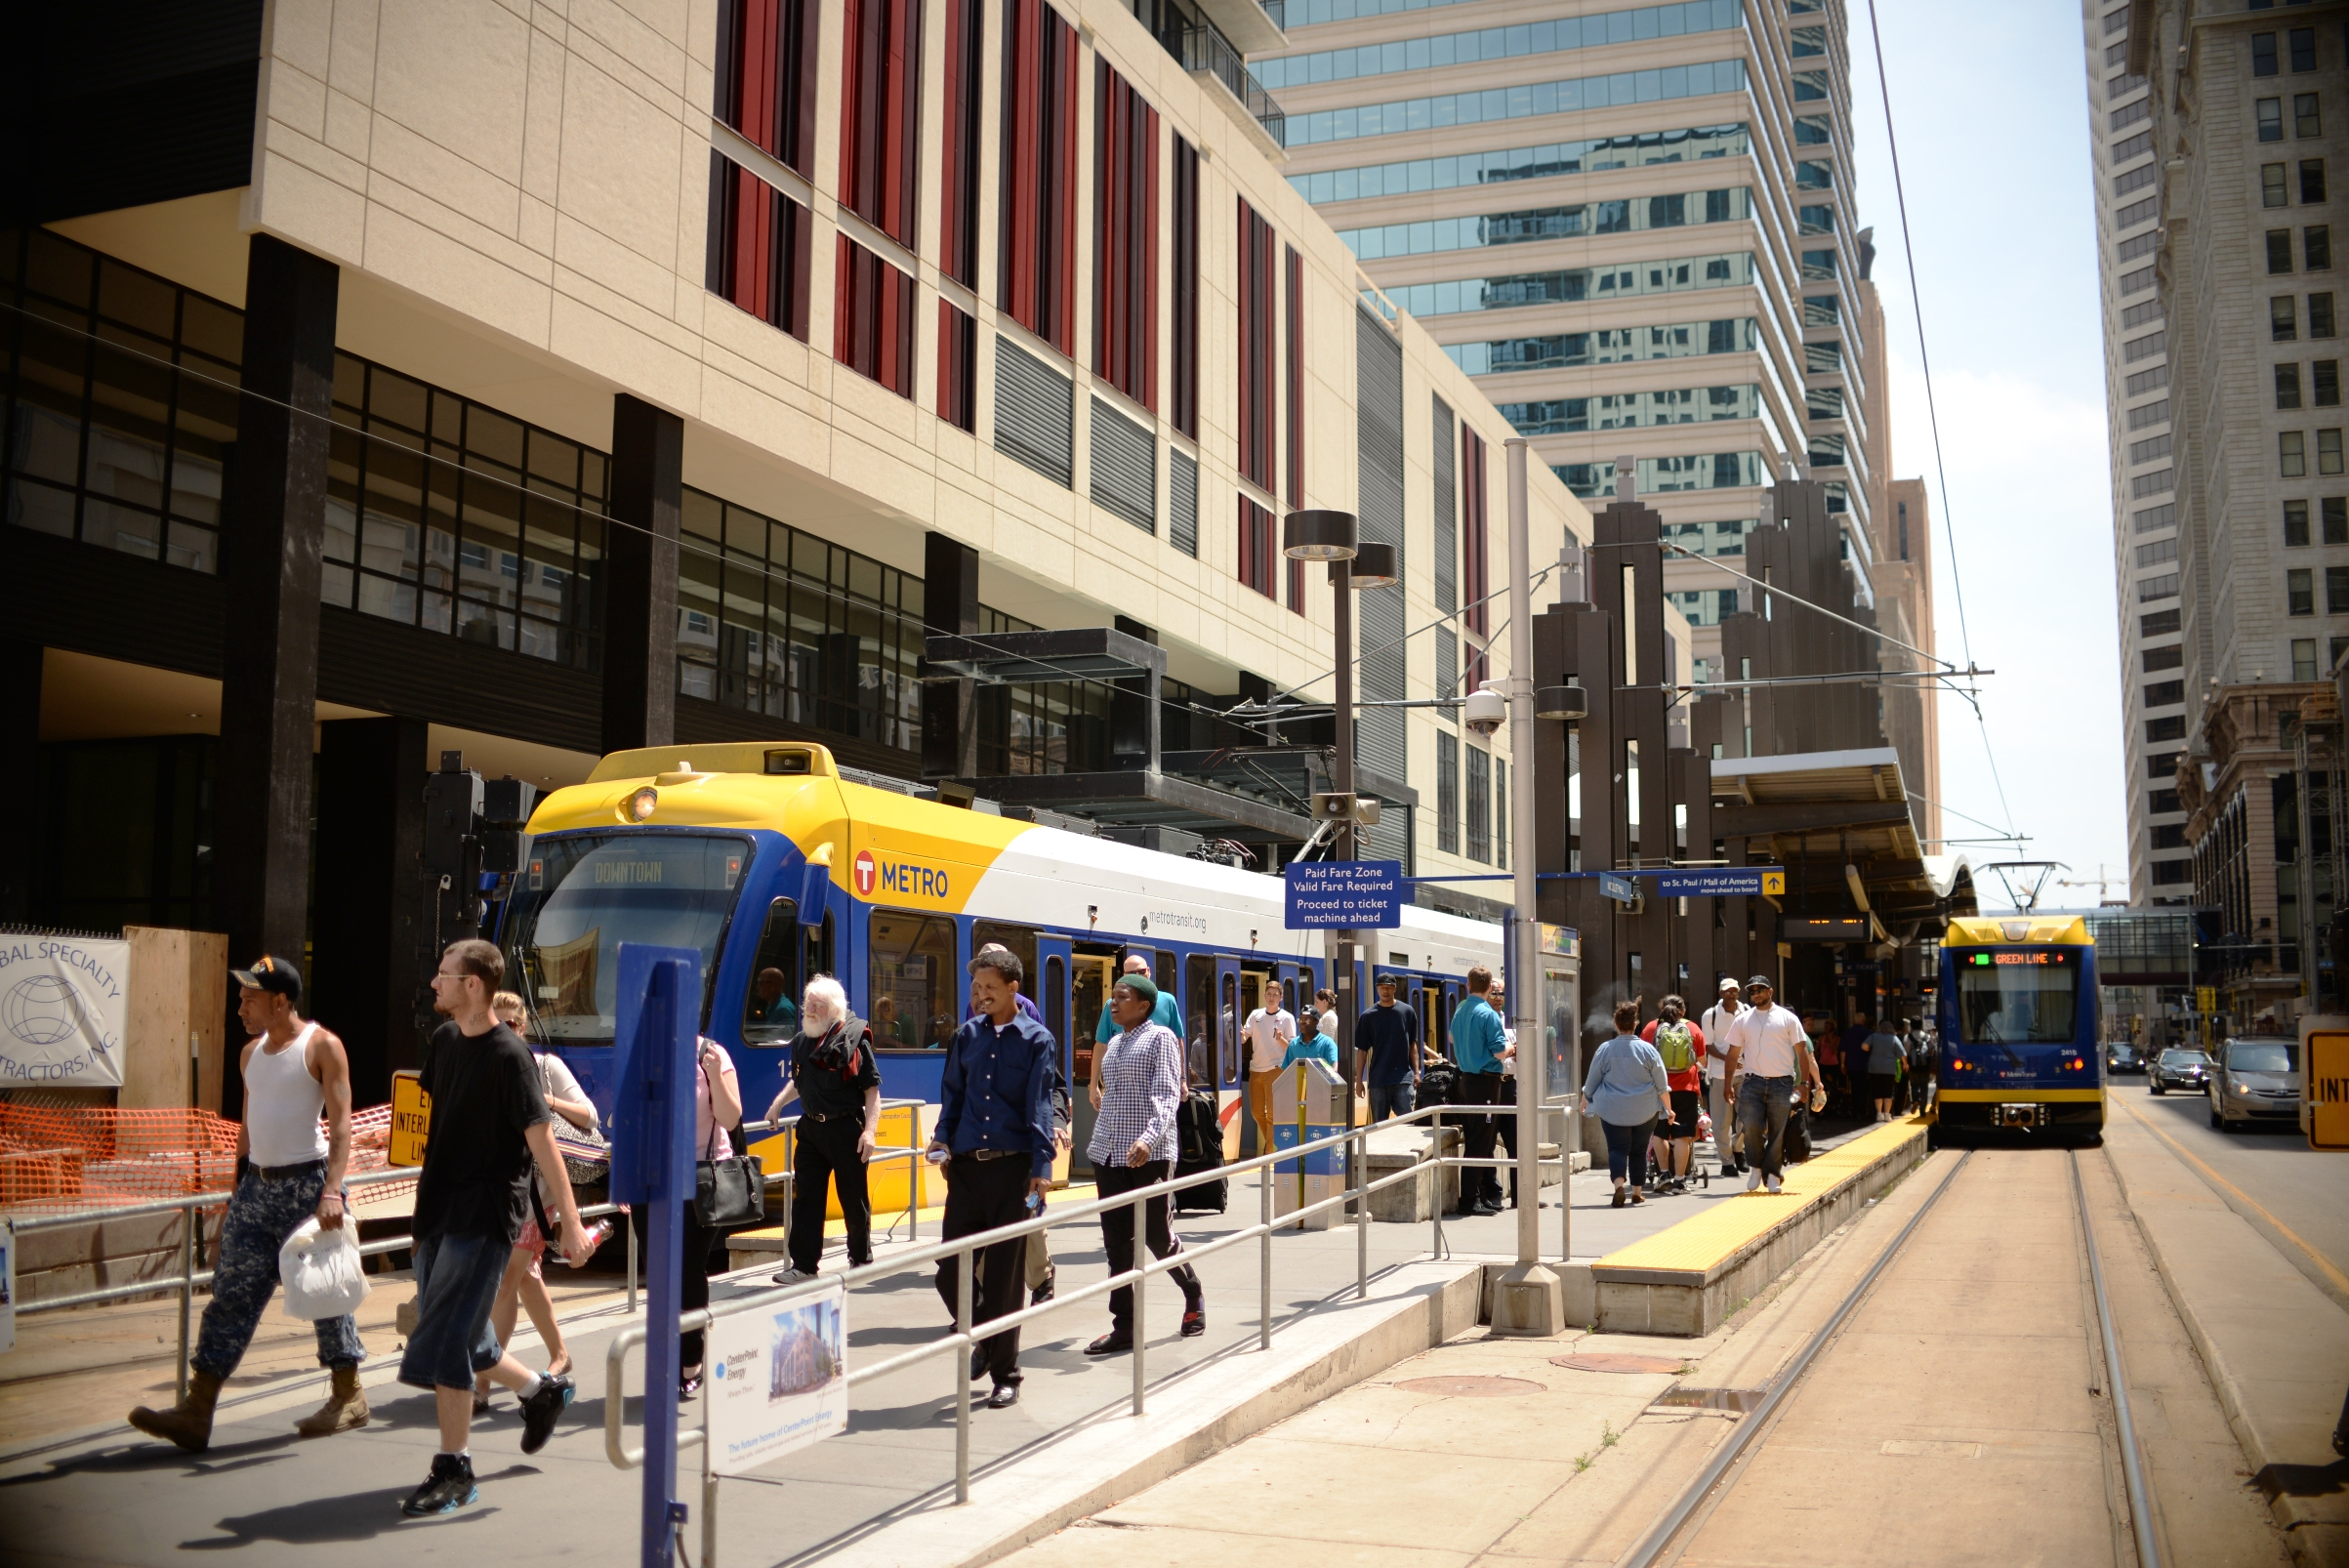 Customers exit a light-rail train at Nicollet Mall Station in downtown Minneapolis.